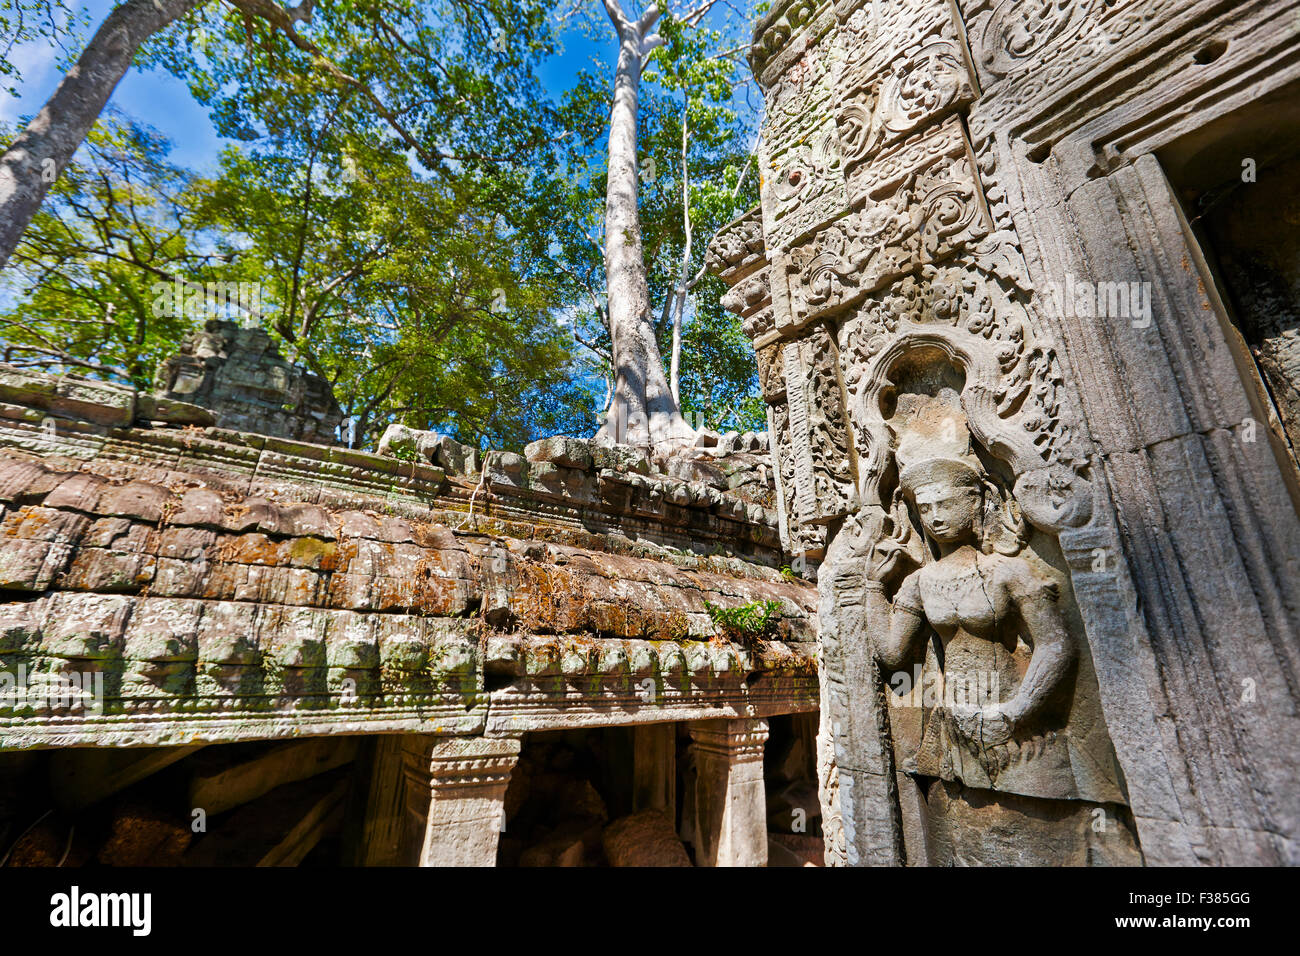 Bas-relief in Ta Prohm temple. Angkor Archaeological Park, Siem Reap Province, Cambodia. - Stock Image